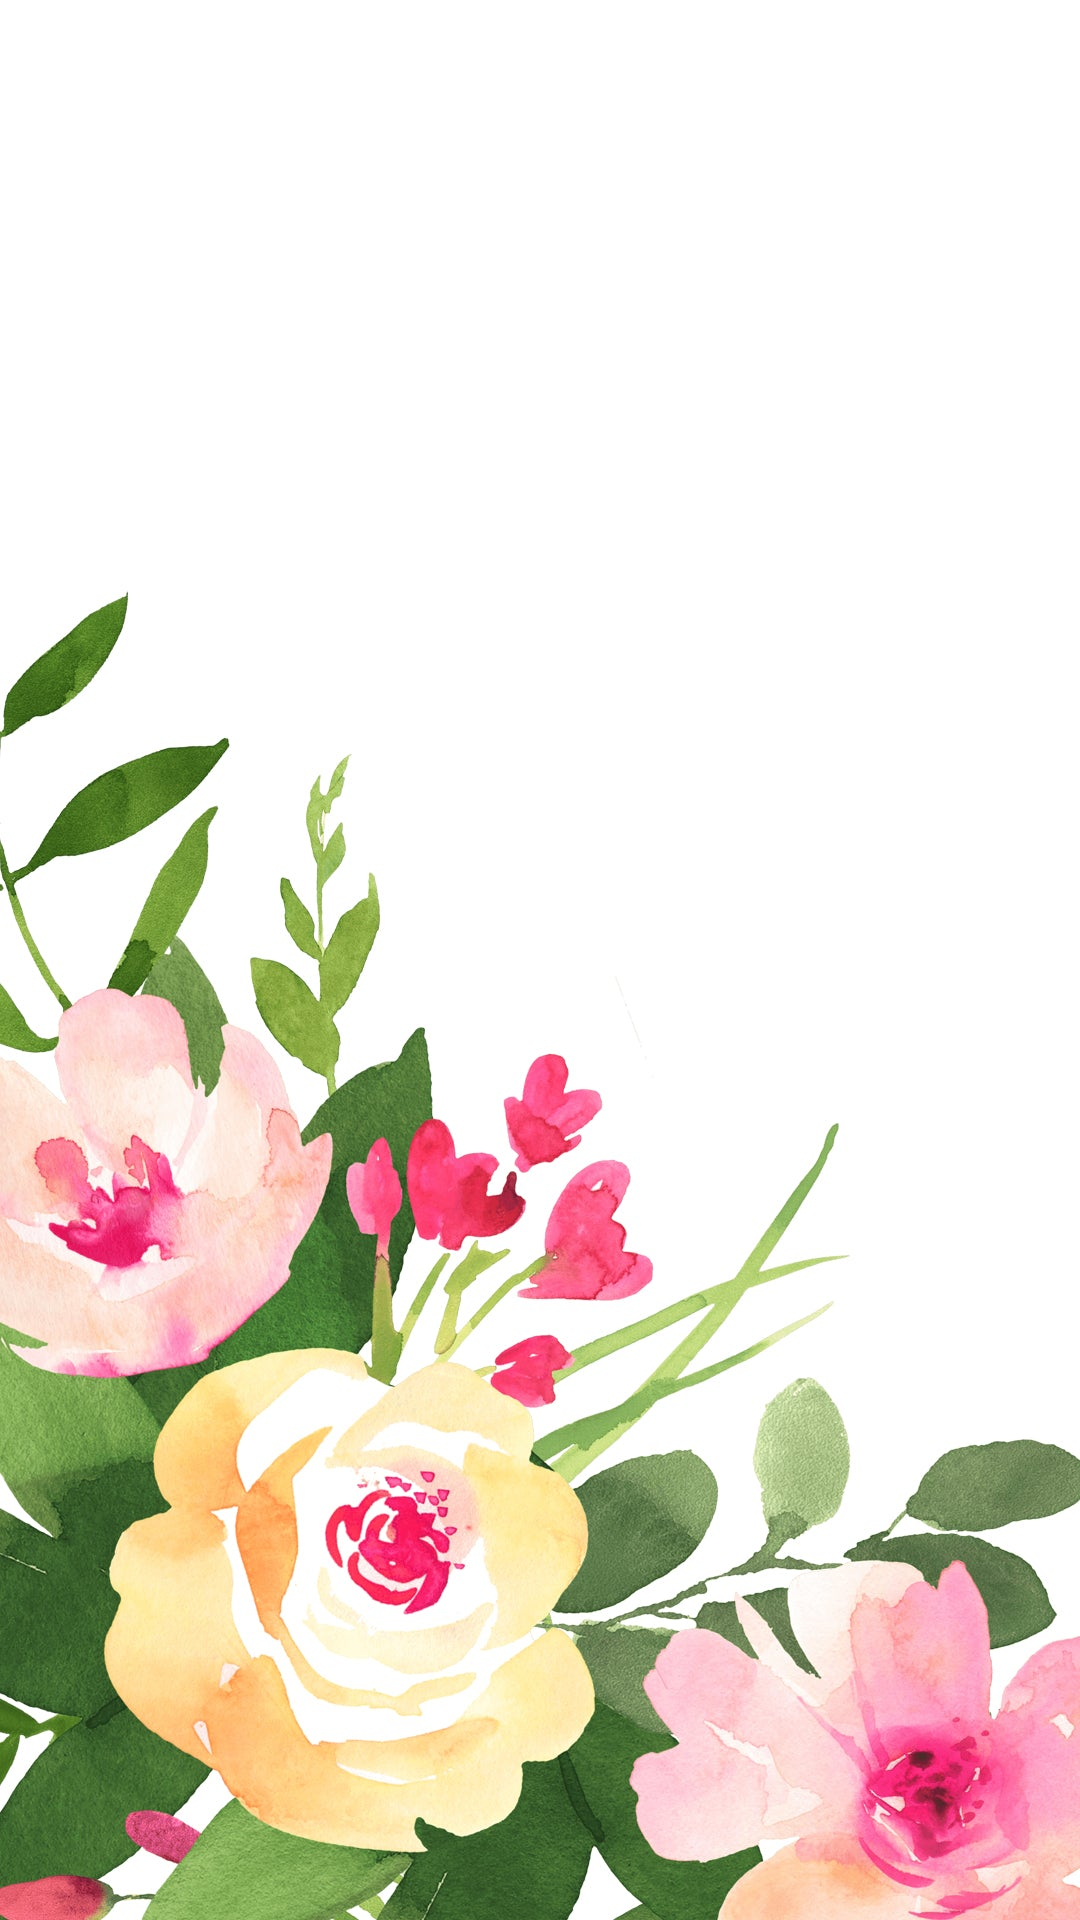 Free Spring Wallpaper Downloads Tickled Pink Gift